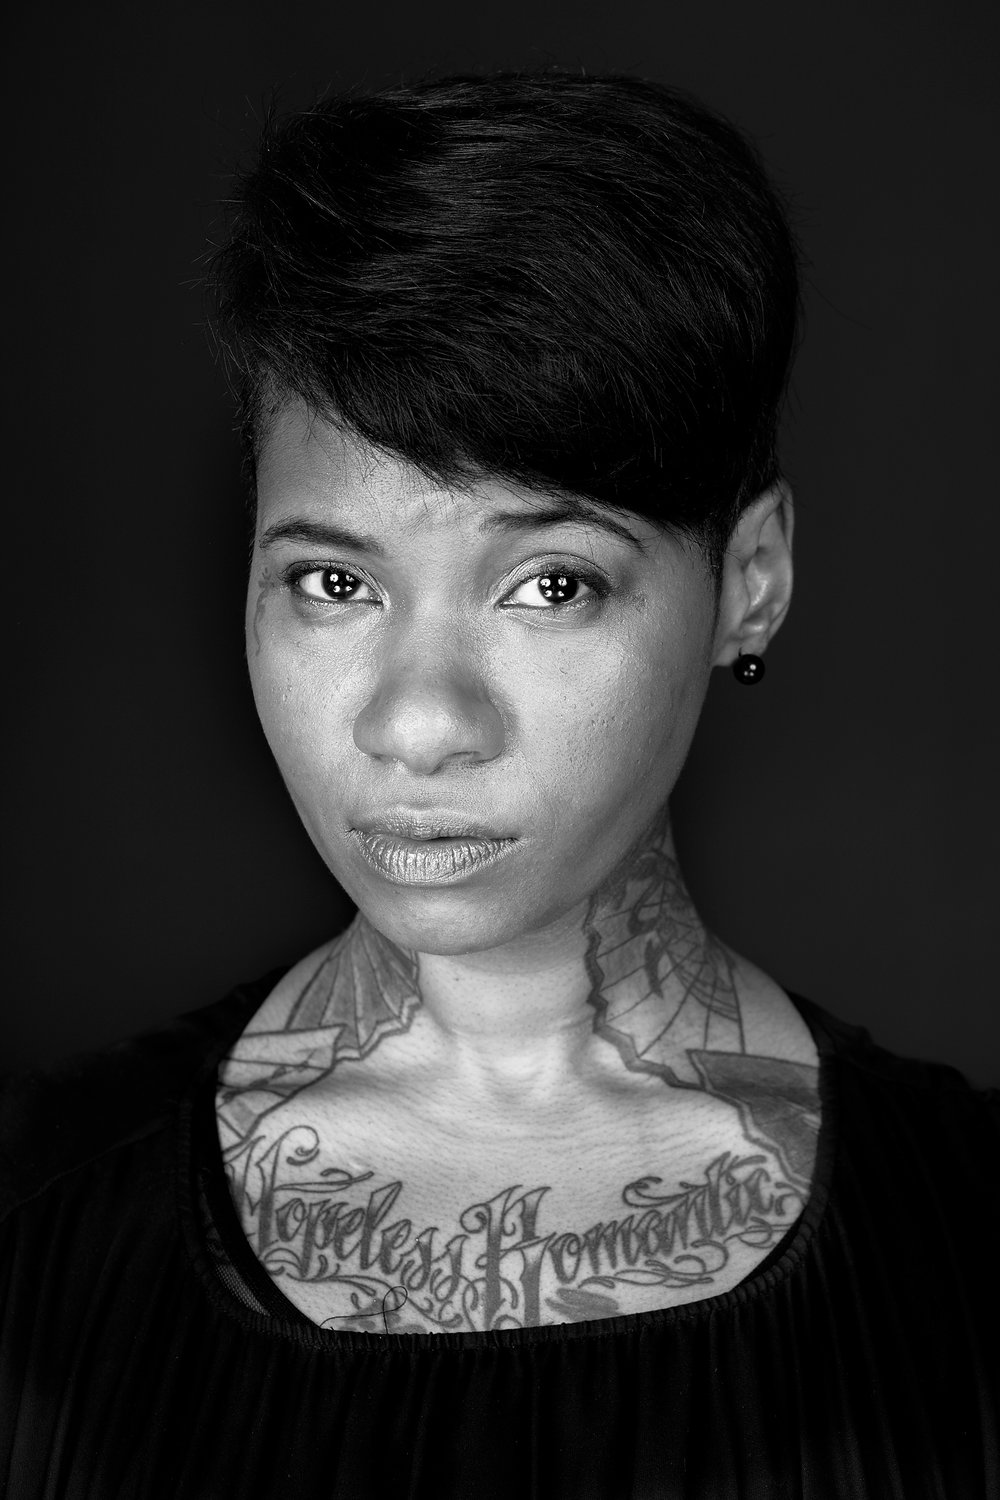 Got a Girl Crush On: Jean Grae Nikola Tamindzic, Jean Grae (for Jezebel 25) South African-born and New York-bred, Jean Grae is widely regarded as one of the most underrated MCs in the game. Coming up in the mid-'90s in the hip hop group Natural Resource, Grae later struggled as a solo artist to find her footing in a rap landscape that was overpopulated with hyper-sexualized female artists. Refusing to assimilate, Grae has truly epitomized the spirt of an independent artist. At her core, she's an innovator, with raw and incredibly personal lyrics that touch on the kind of shared female experiences that no other rapper has dared explore, like the complexity of mother/daughter relationships. — Tracie Egan Morrissey, Jezebel.com (via homeofthevain)